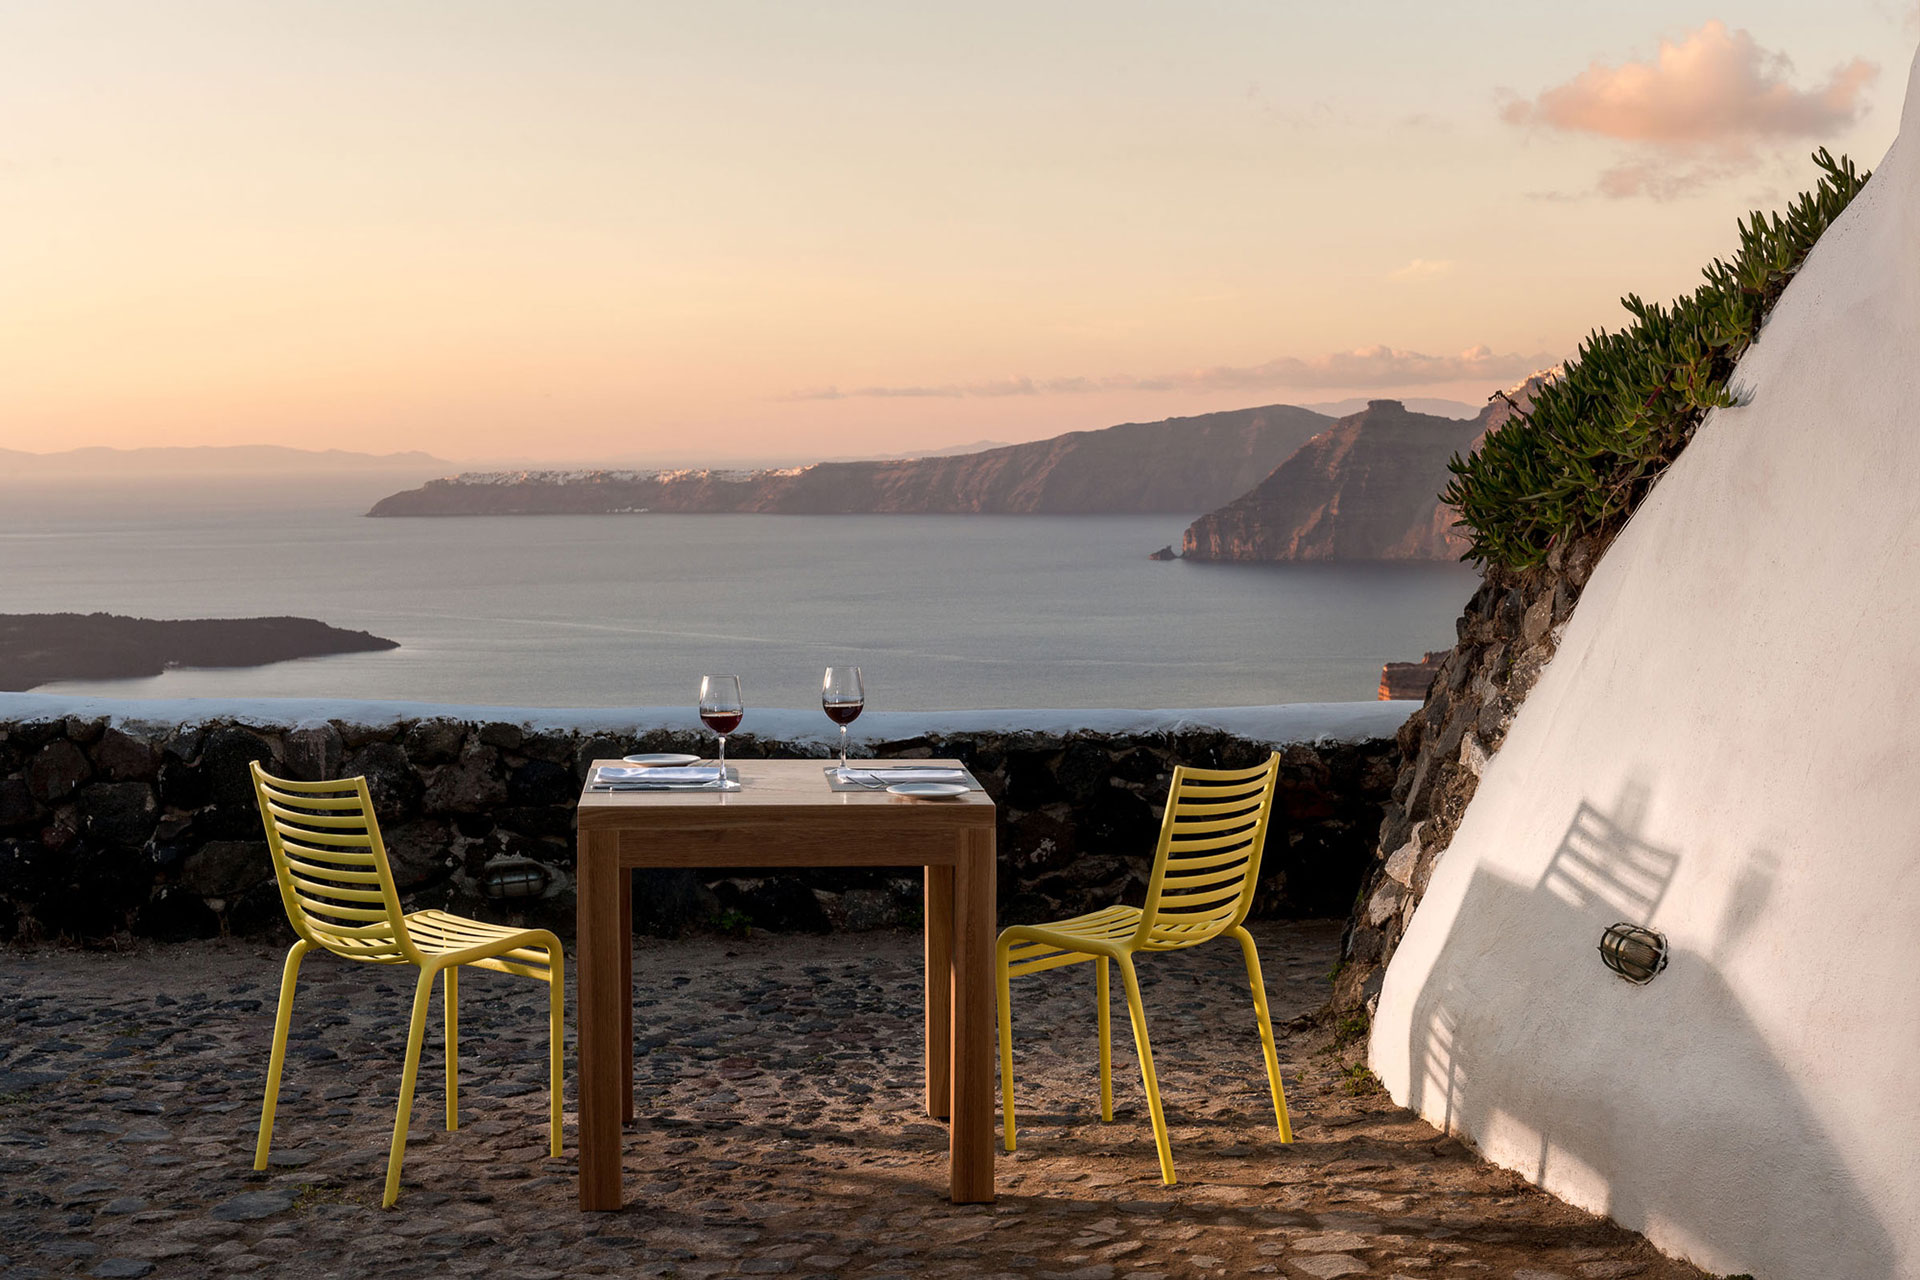 Venetsanos Winery Santorini Sunset Backpacks and Postcards Travel Blog